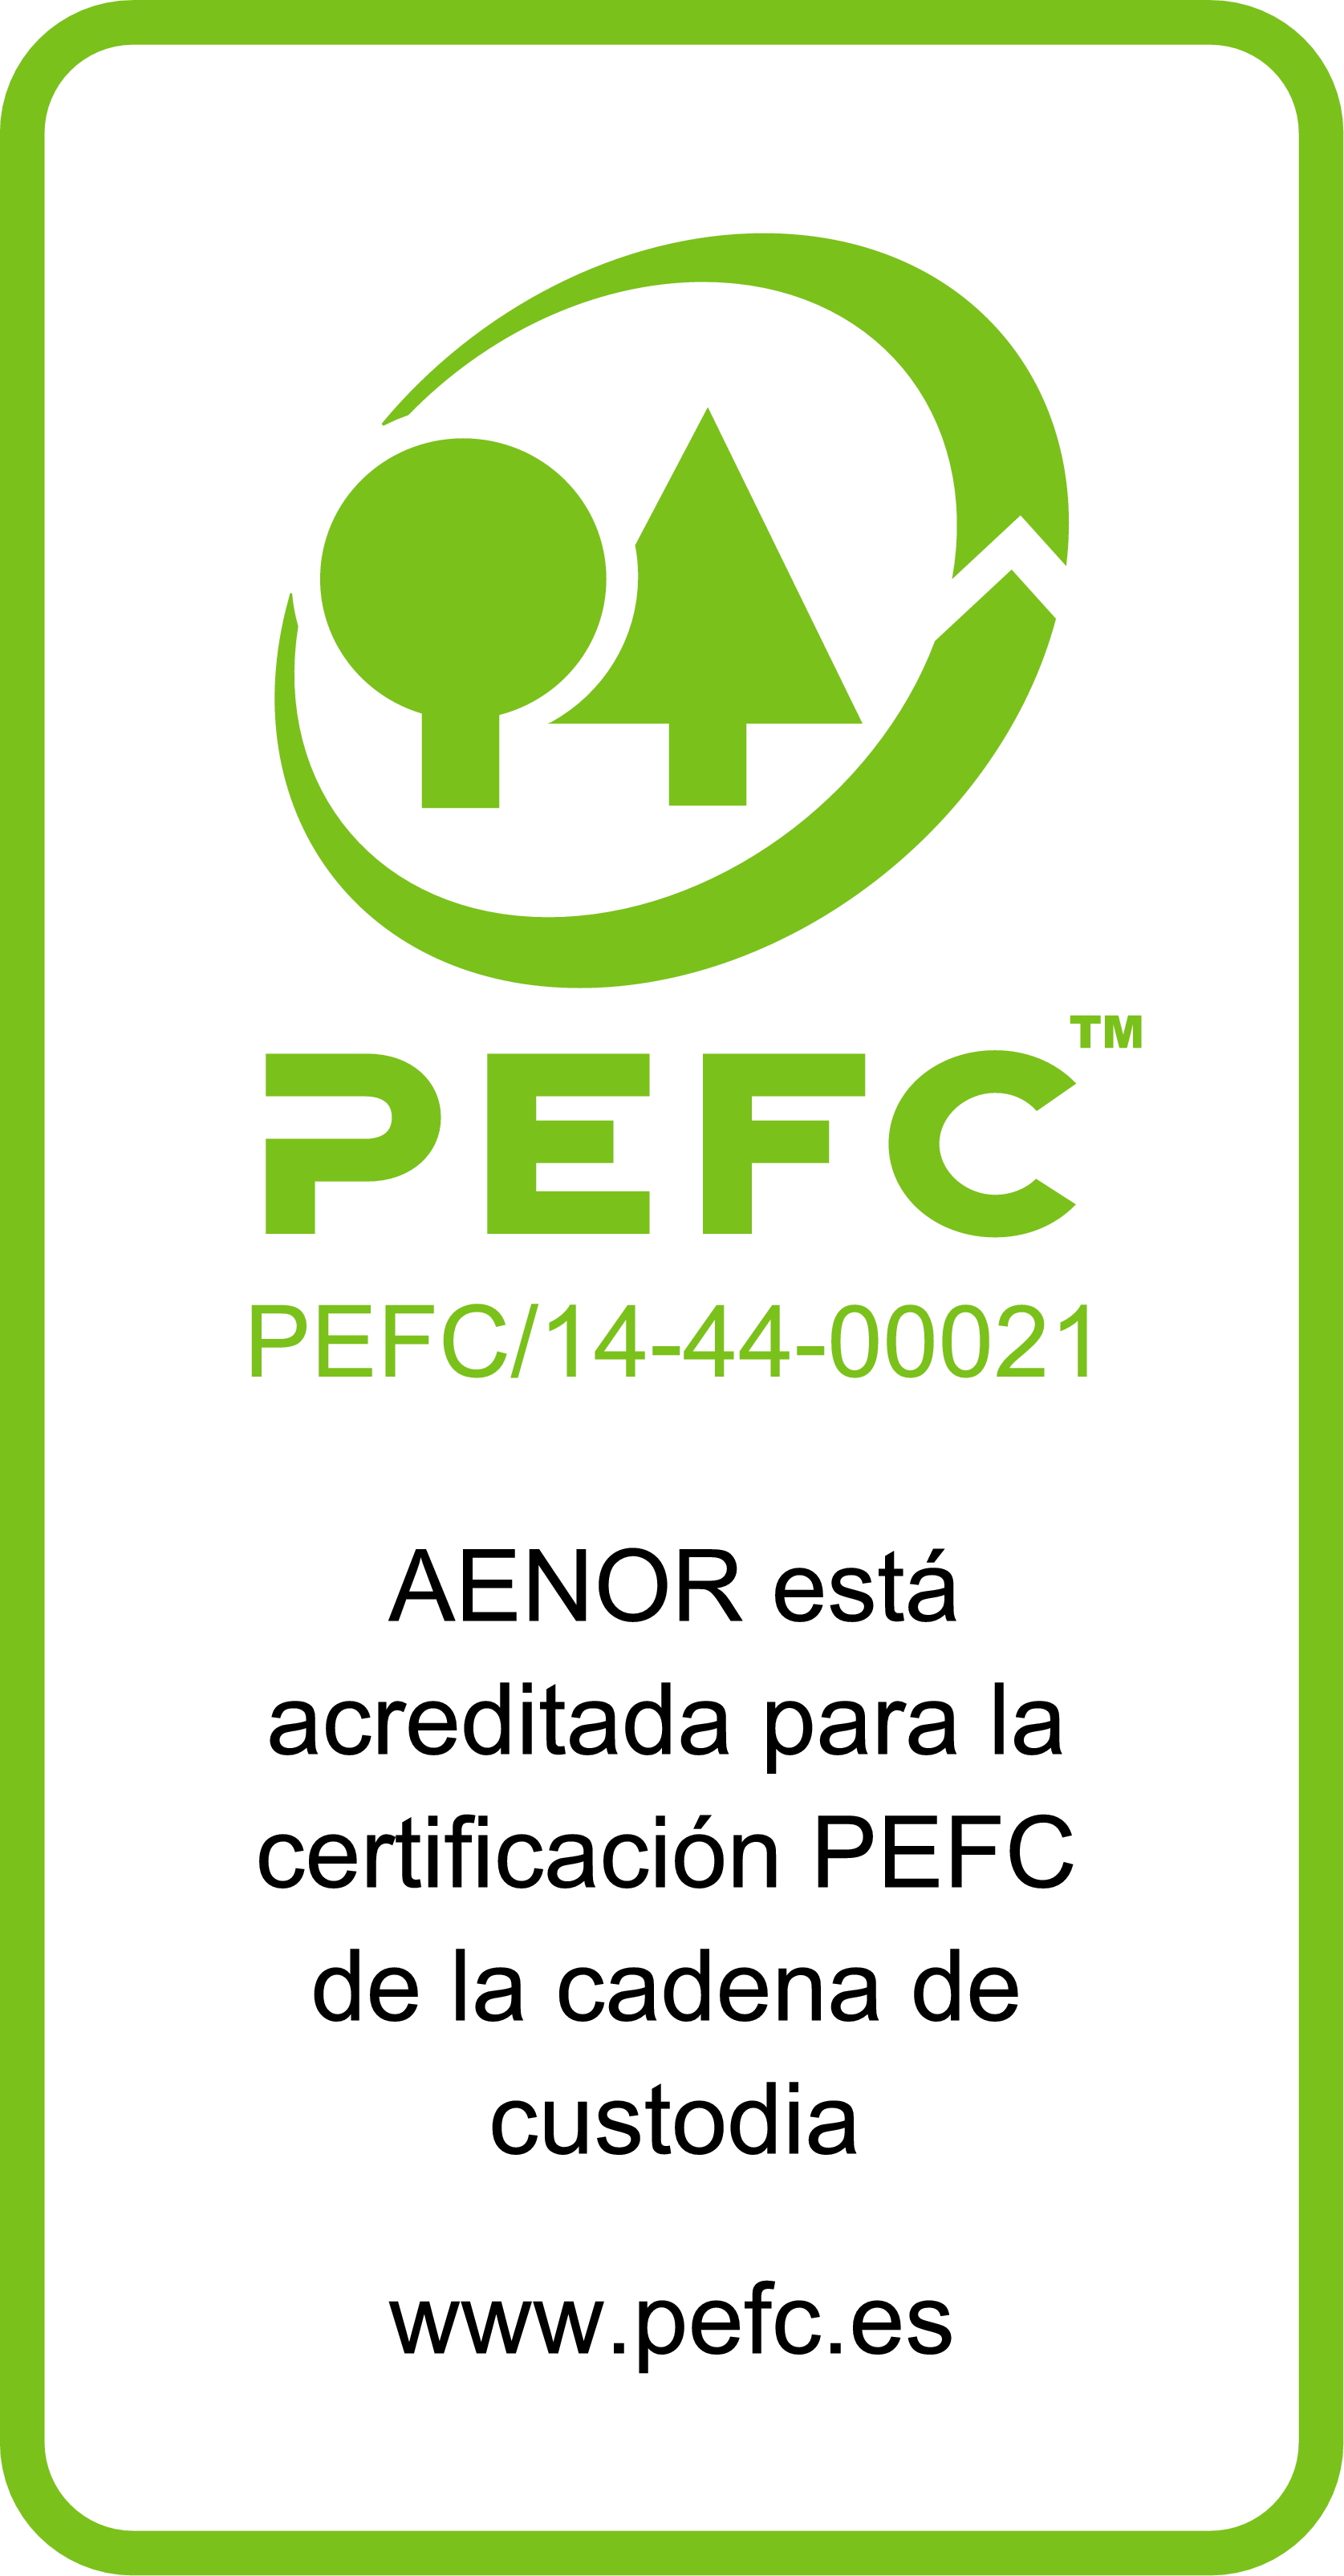 Conformidad con los requisitos de Cadena de Custodia PEFC